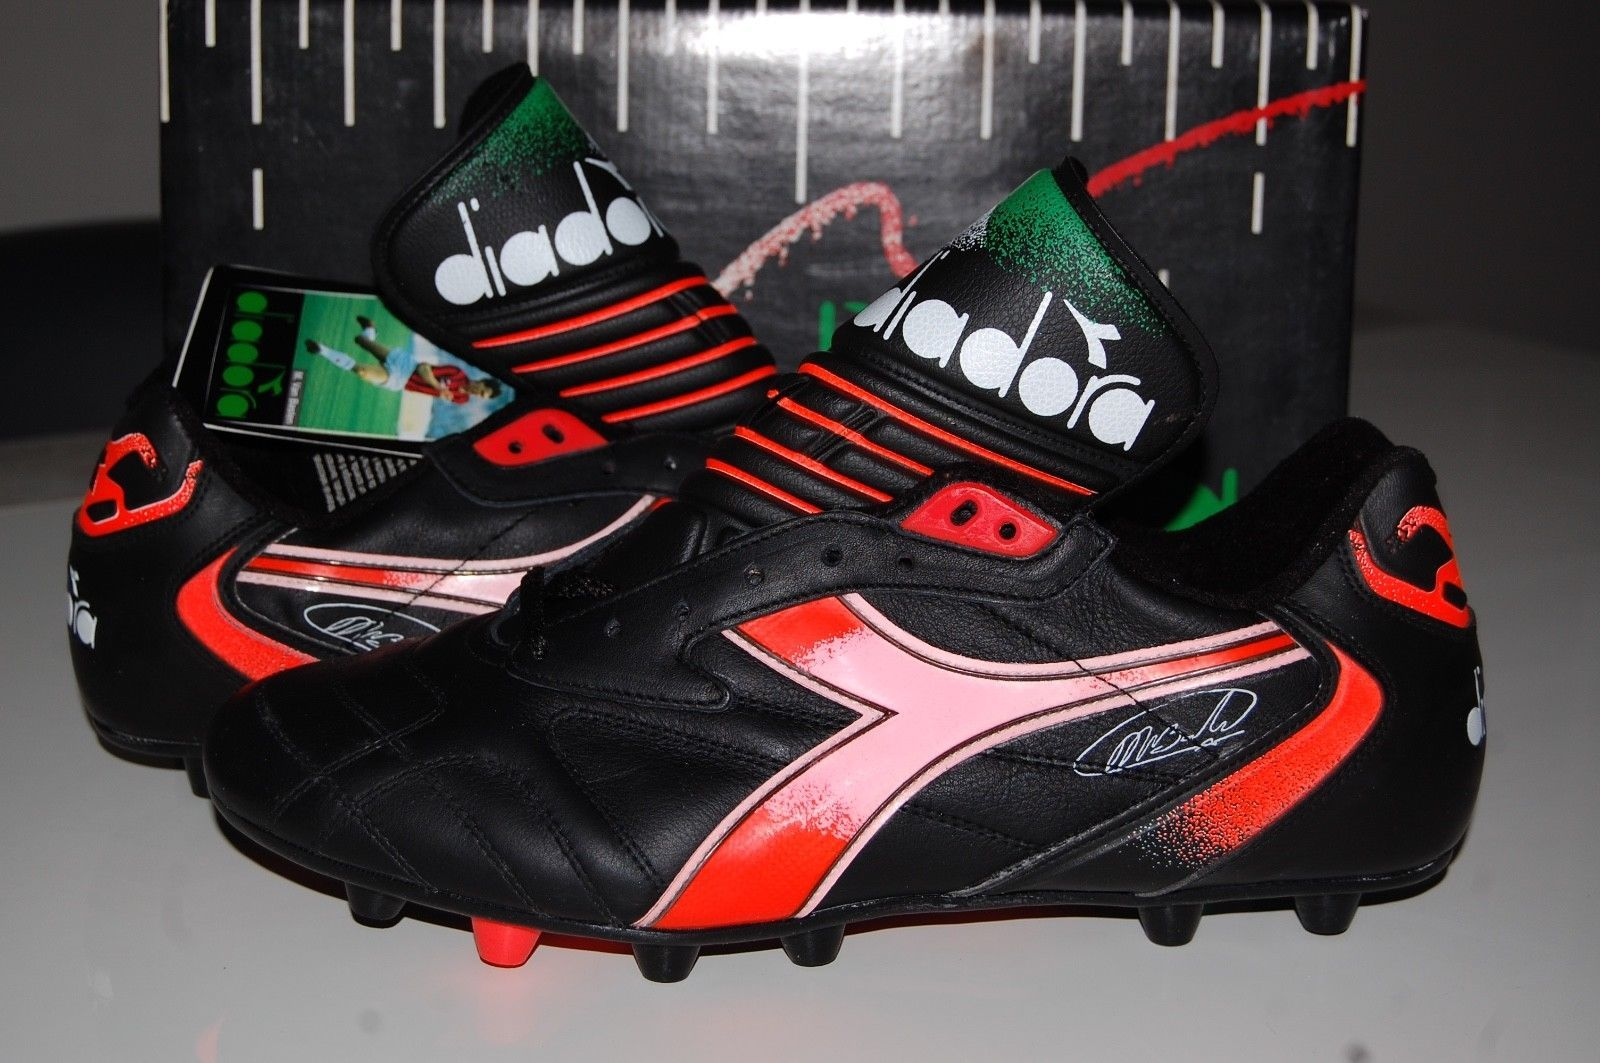 Marco Basten Diadora Uk Van 10 Football Deadstock New Vintage Rapid HUxxqw61